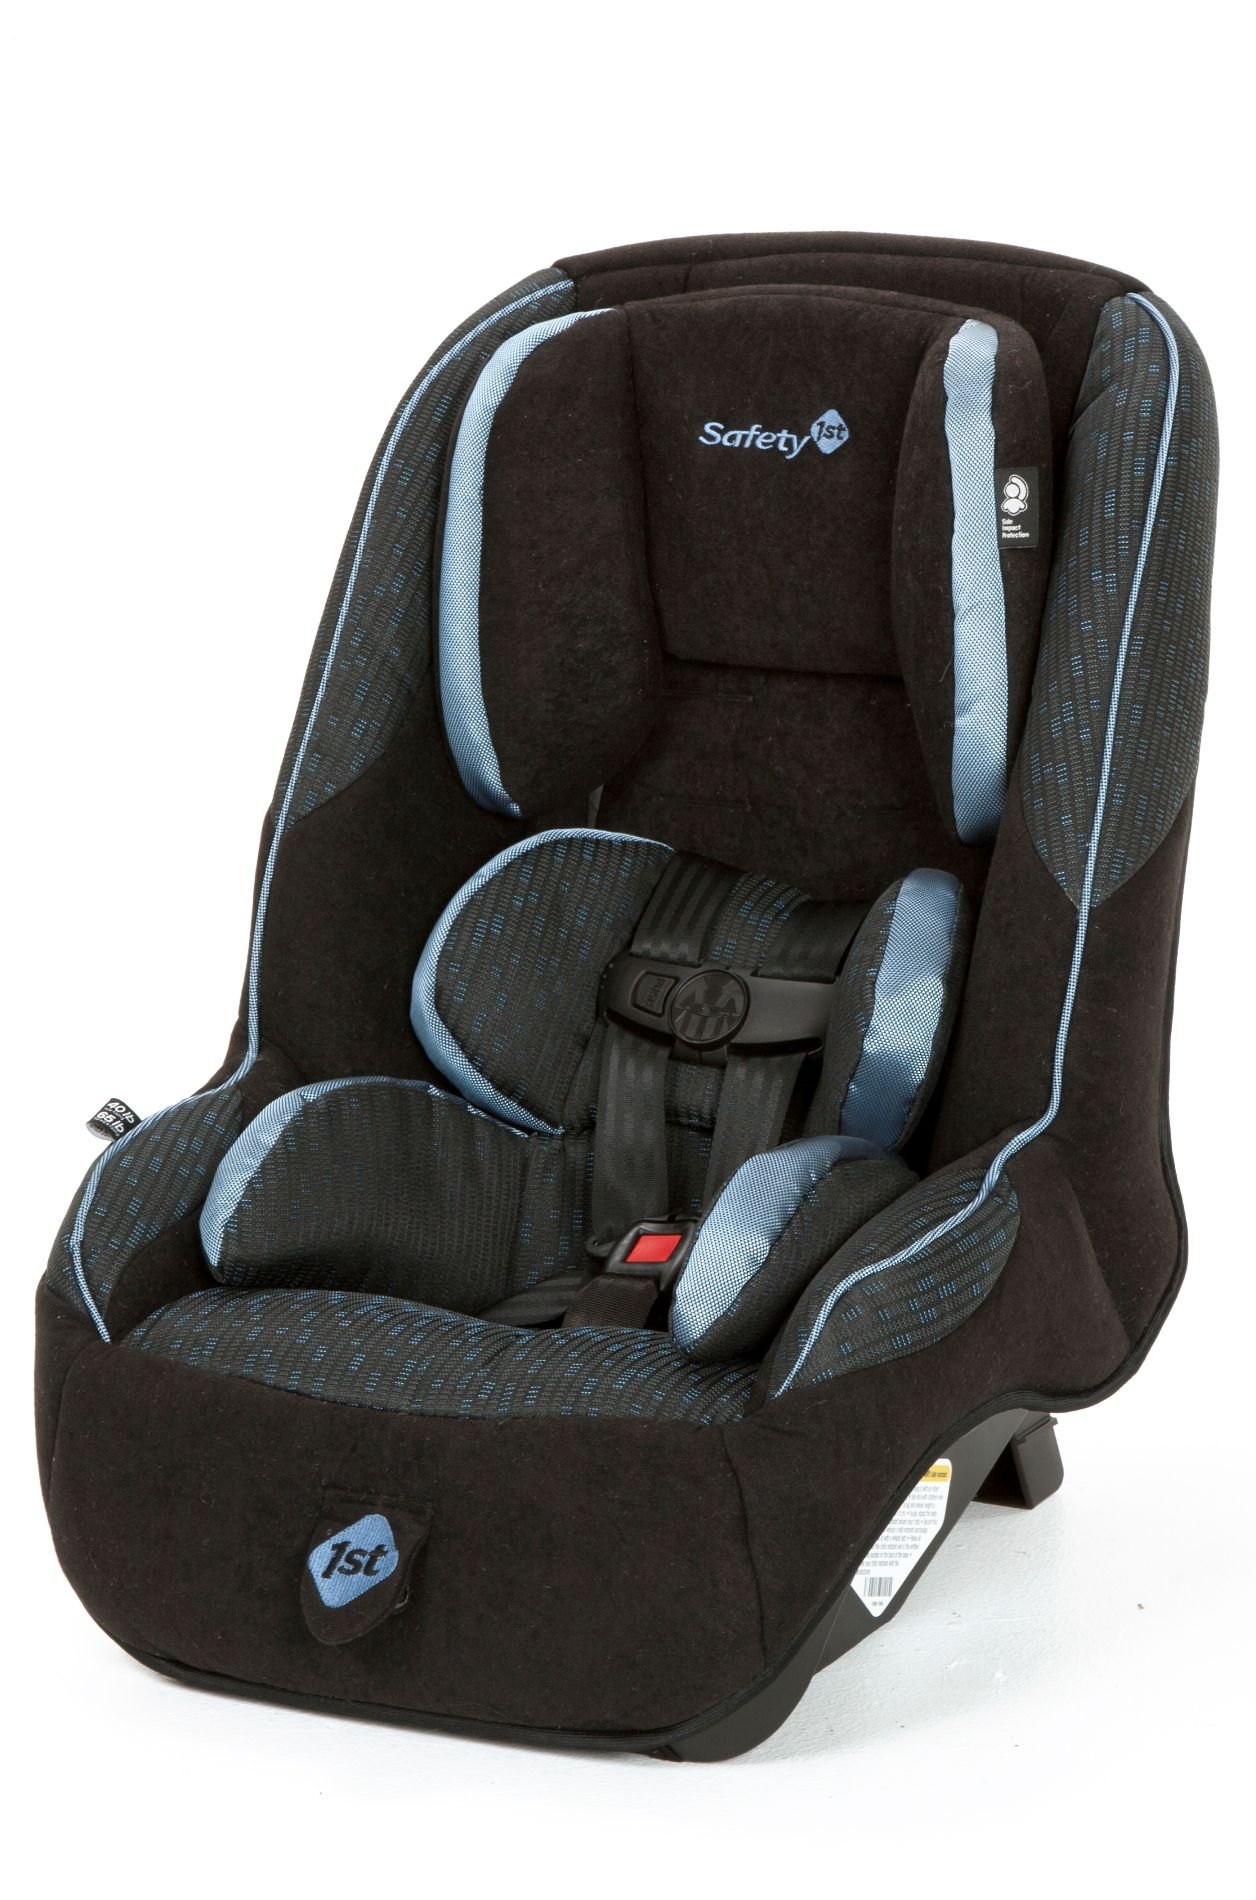 car seat office chair conversion kit design structure safety 1st convertible guide 65 jameson